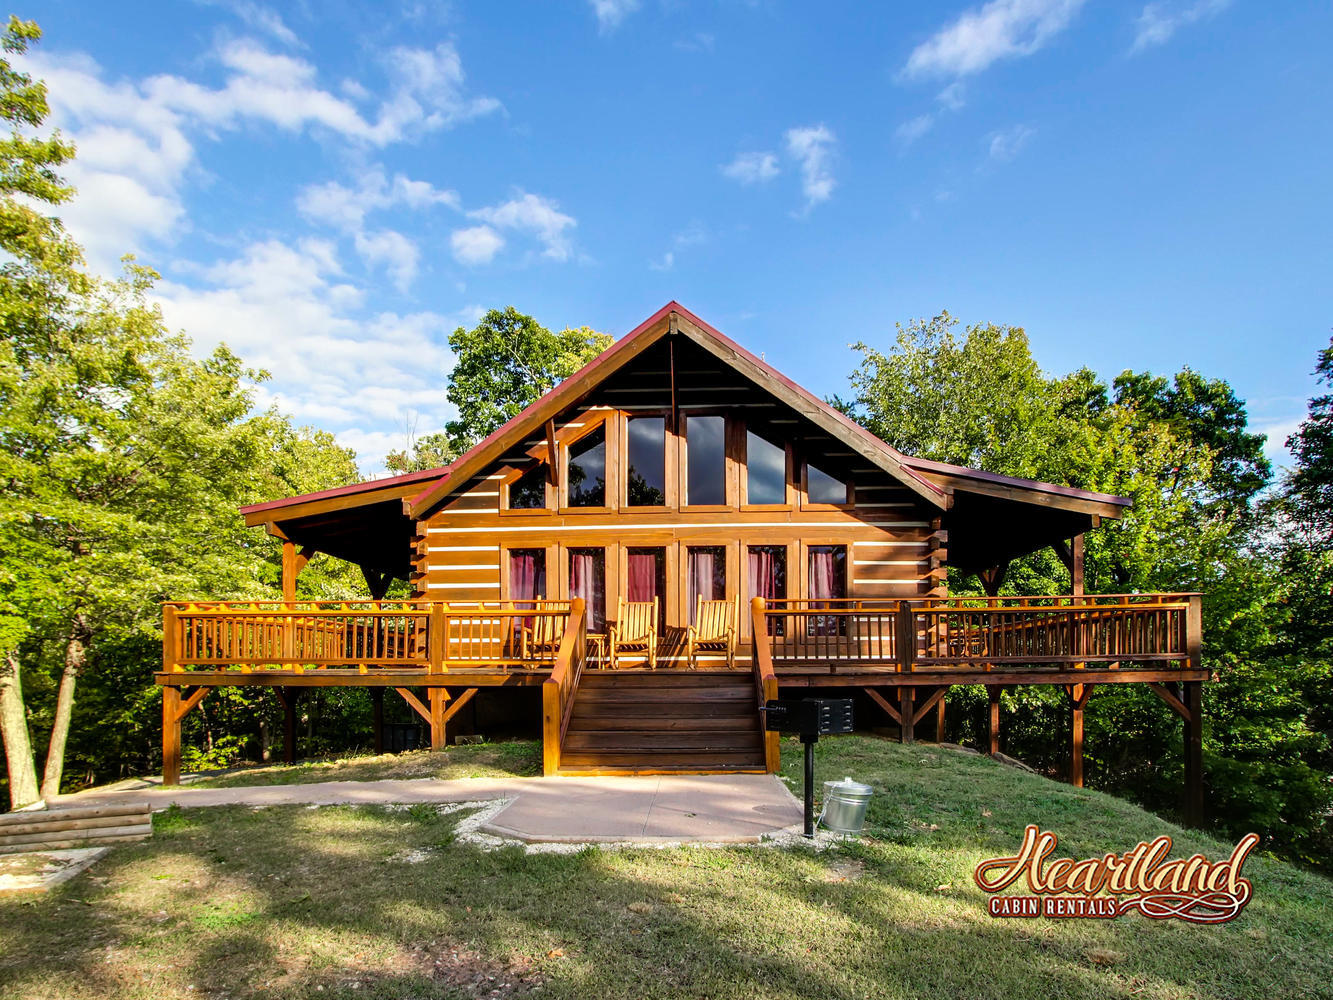 Heartland cabin rentals in pigeon forge tn 37863 for 1 bedroom pet friendly cabins in gatlinburg tn